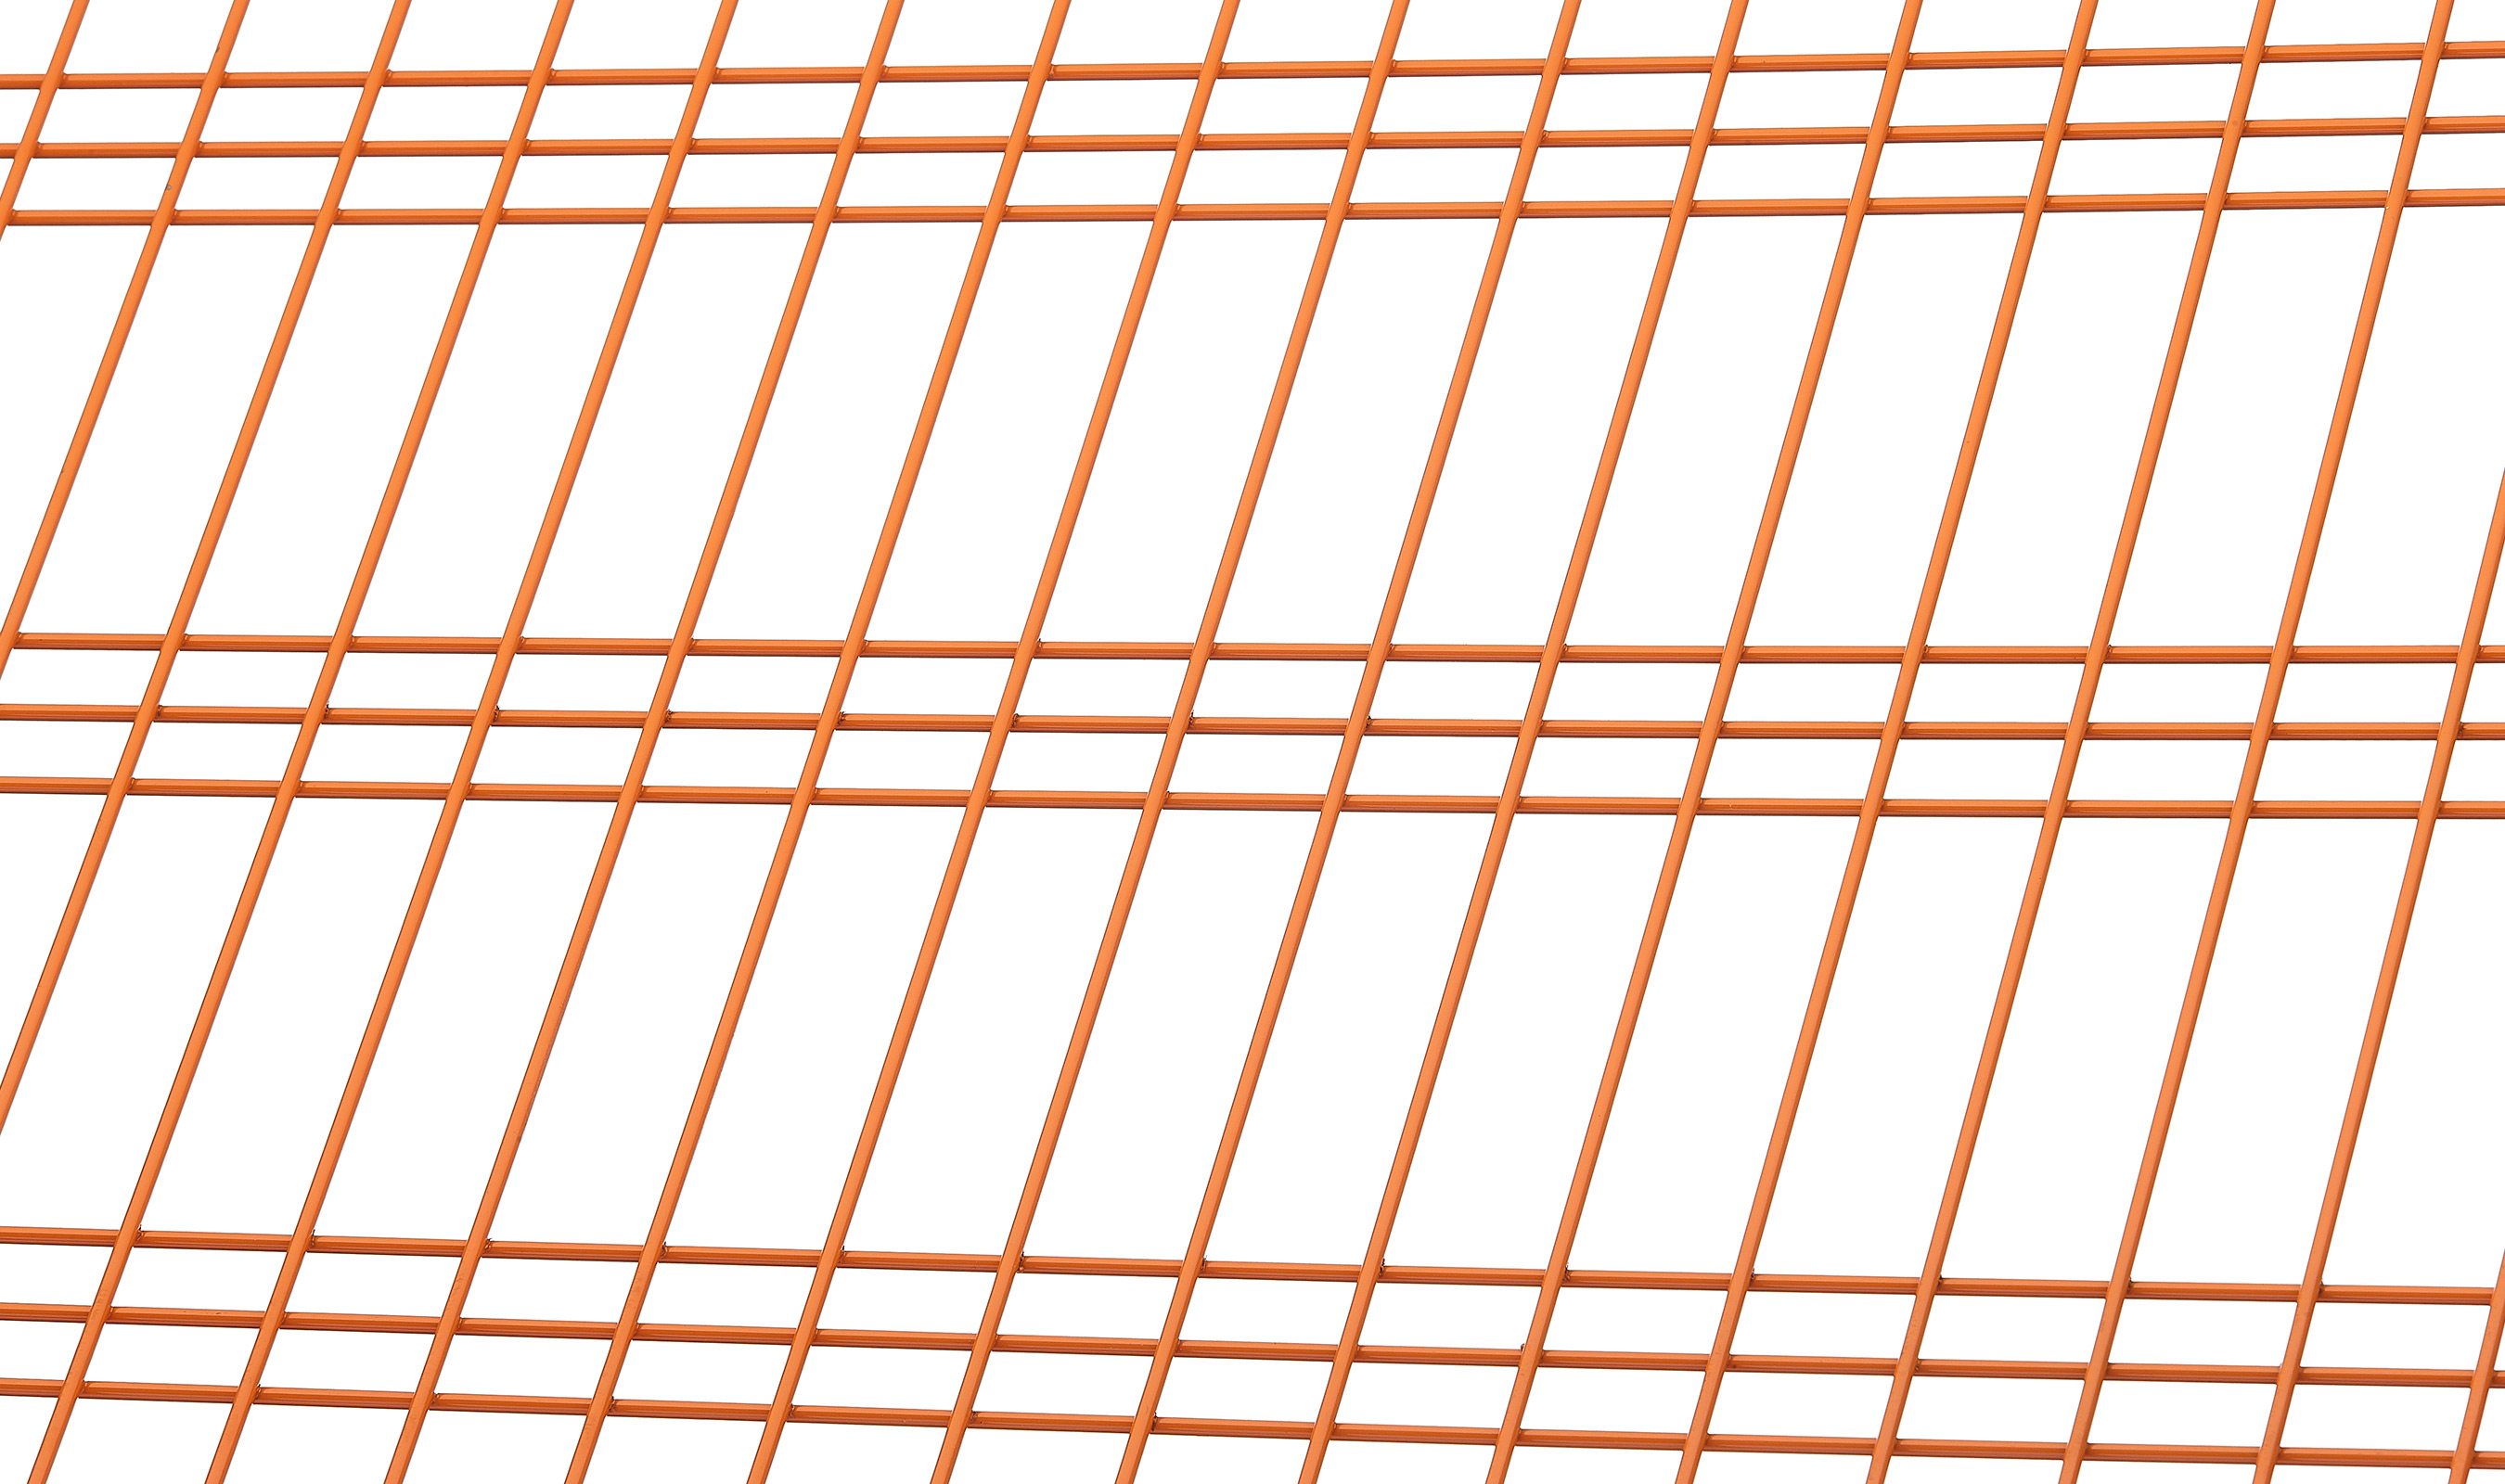 WDZ-545 Ornamental Welded Wire Mesh